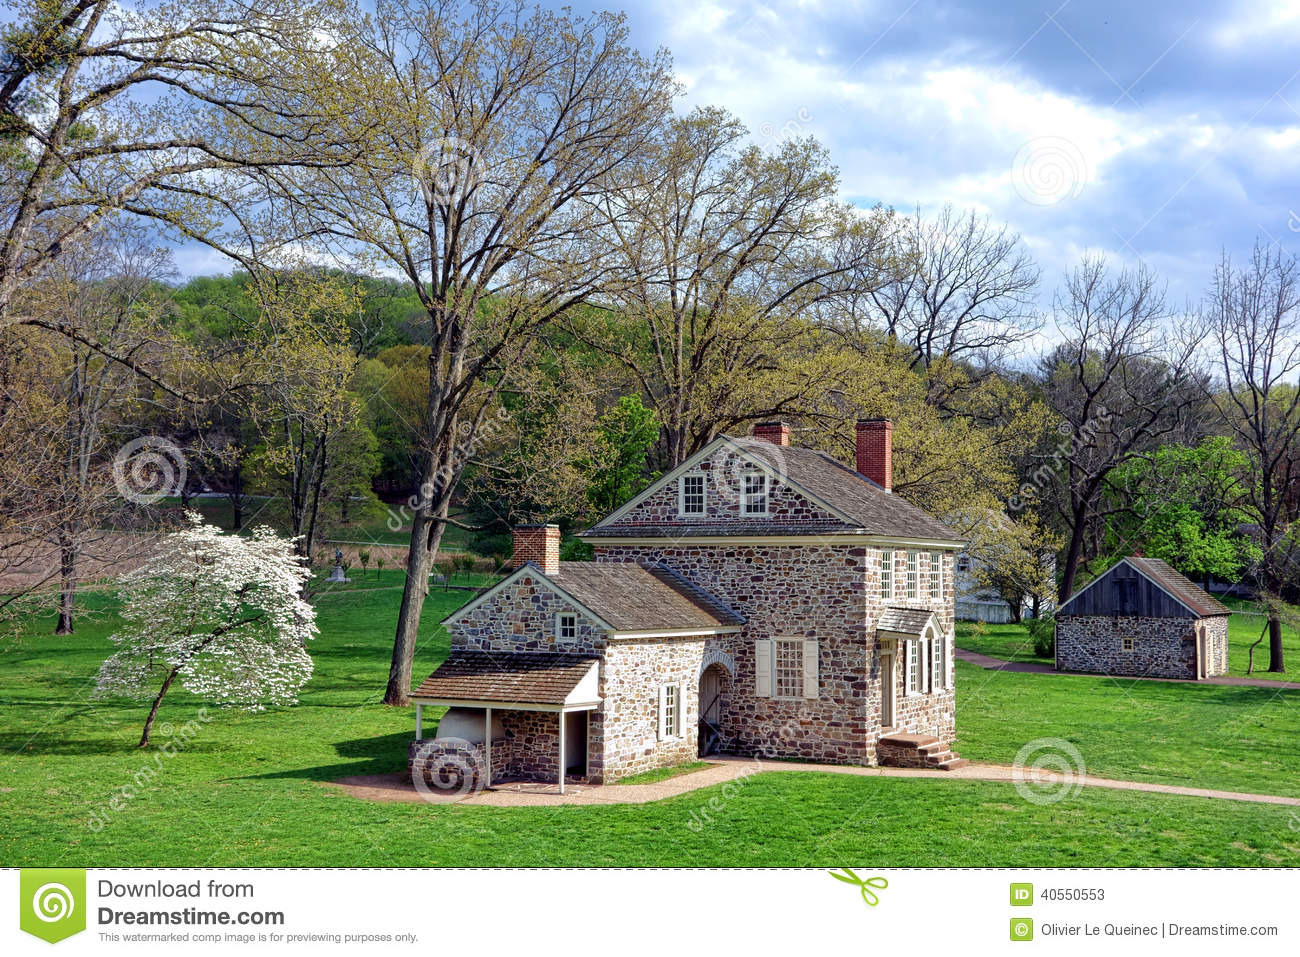 Valley Forge George Washington Headquarters Site